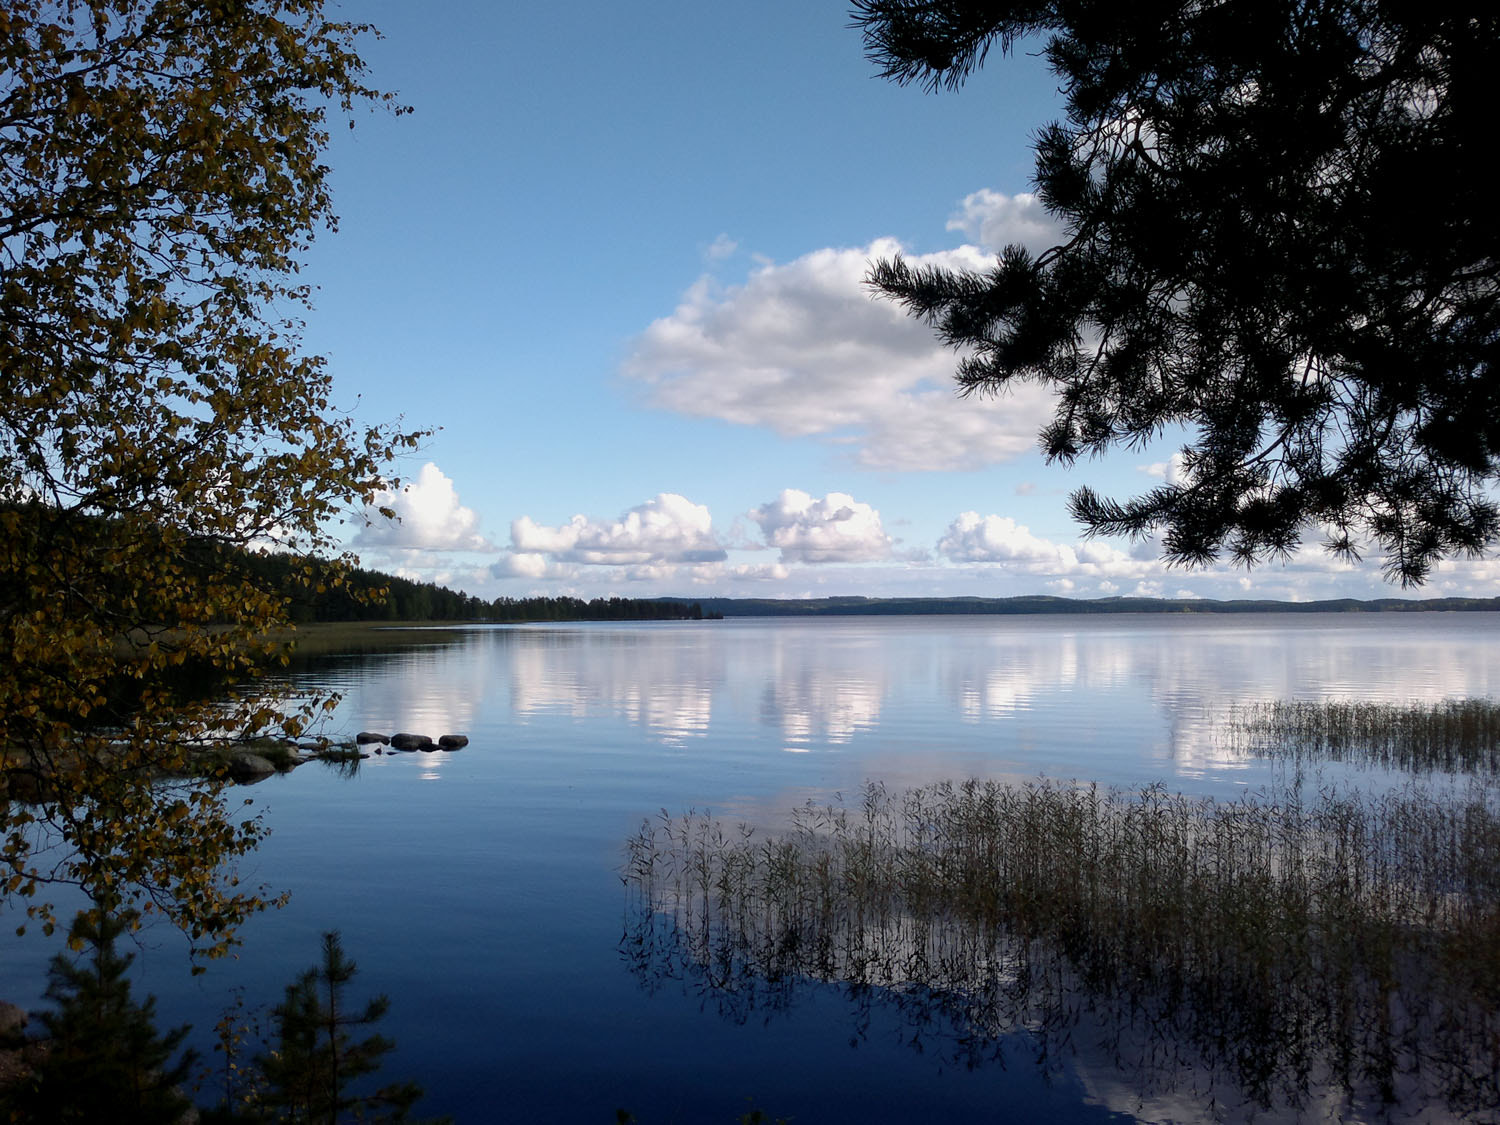 Photograph Lake view by Ann  S on 500px